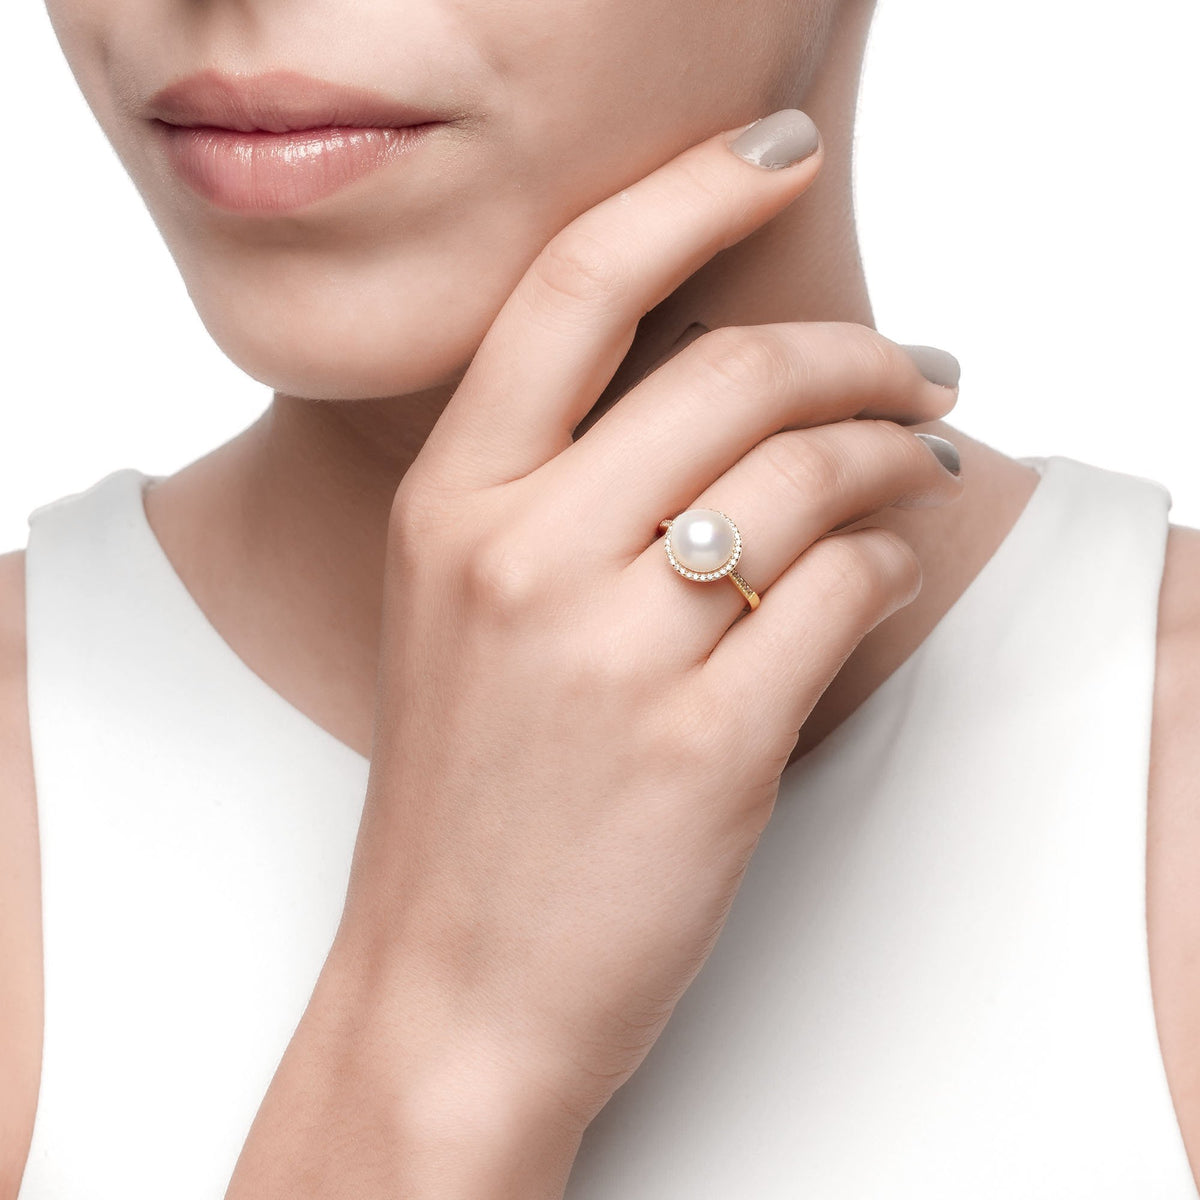 Ferentina | Crème brûlée Ring | 925 Silver | White Pearl & White CZ | 18K Gold Plated